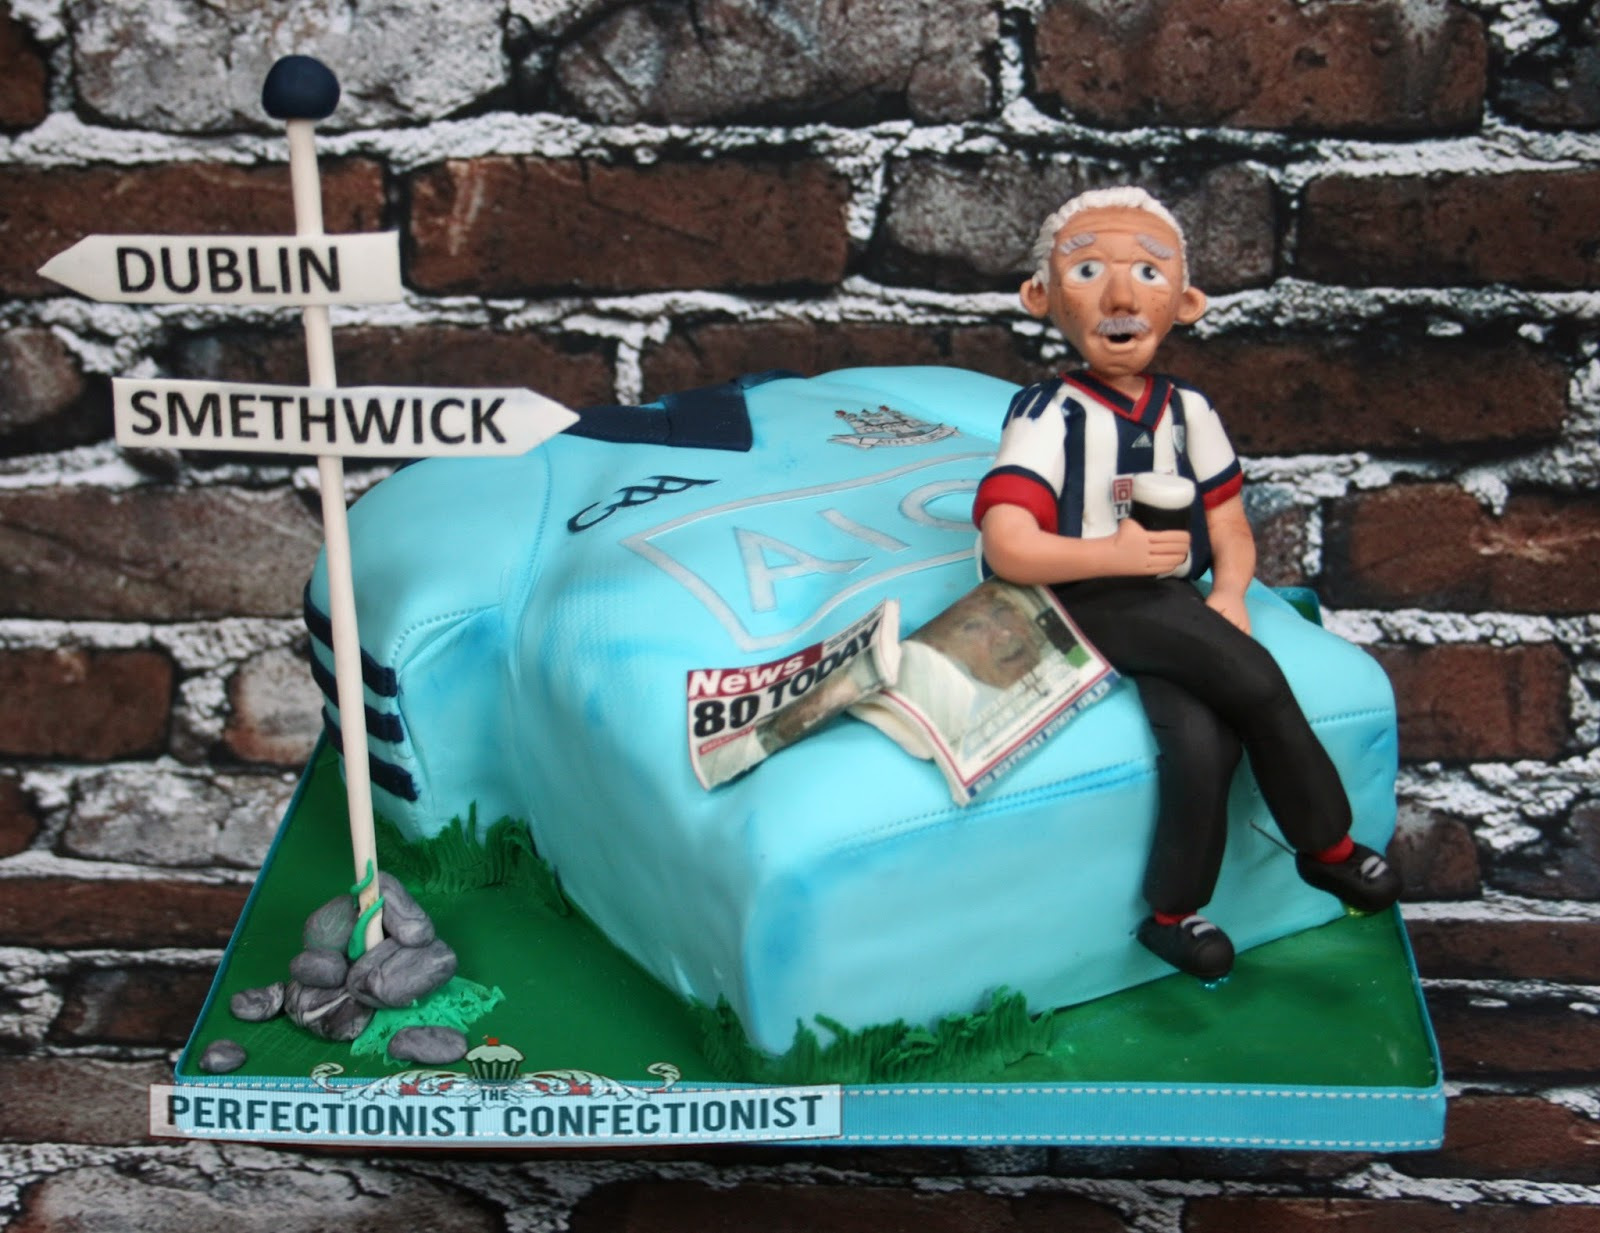 The Perfectionist Confectionist Michael DublinWest Bromwich